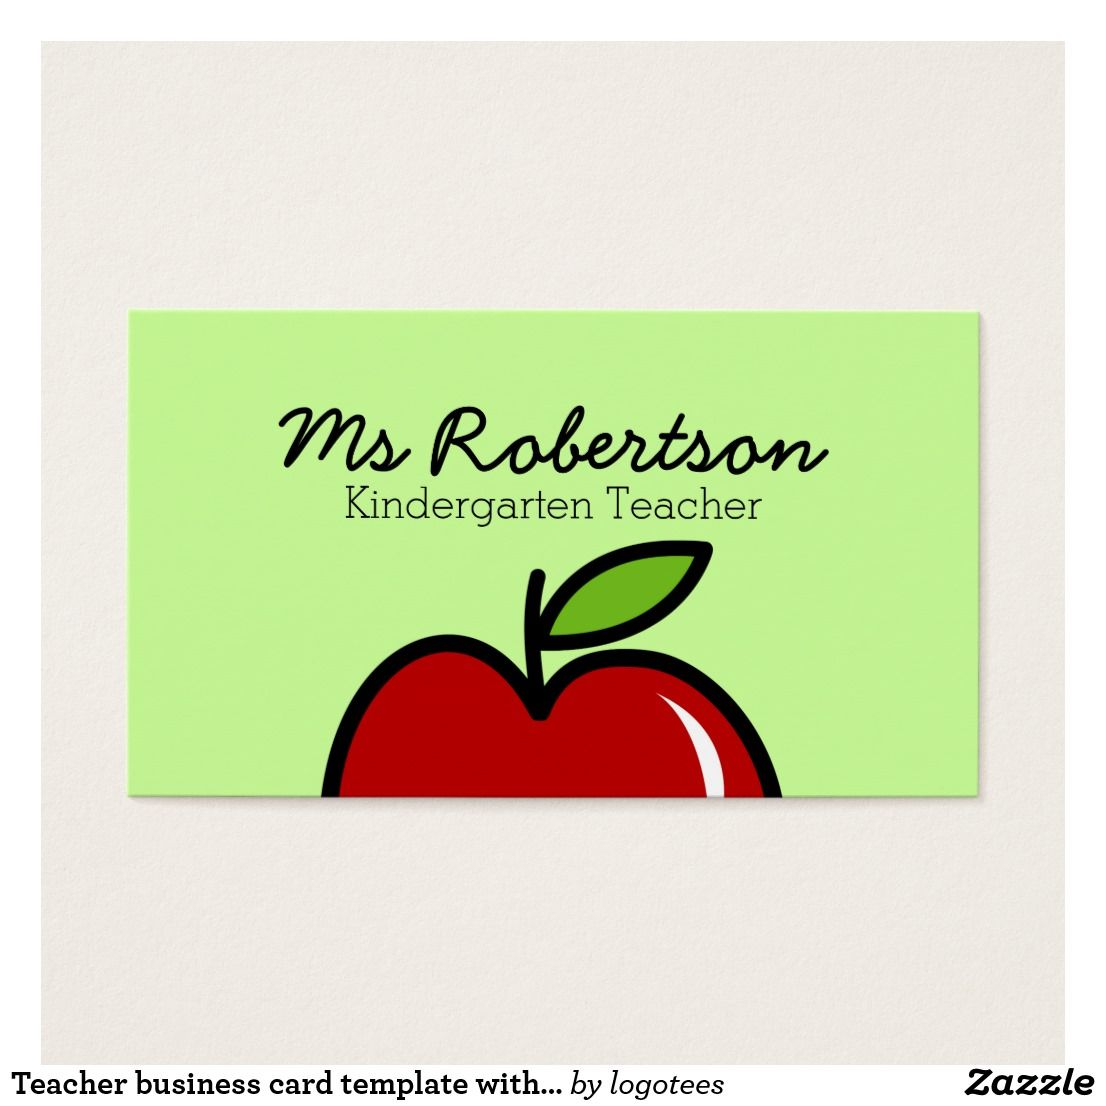 Teacher business card template with red apple. Cute logo design for ...